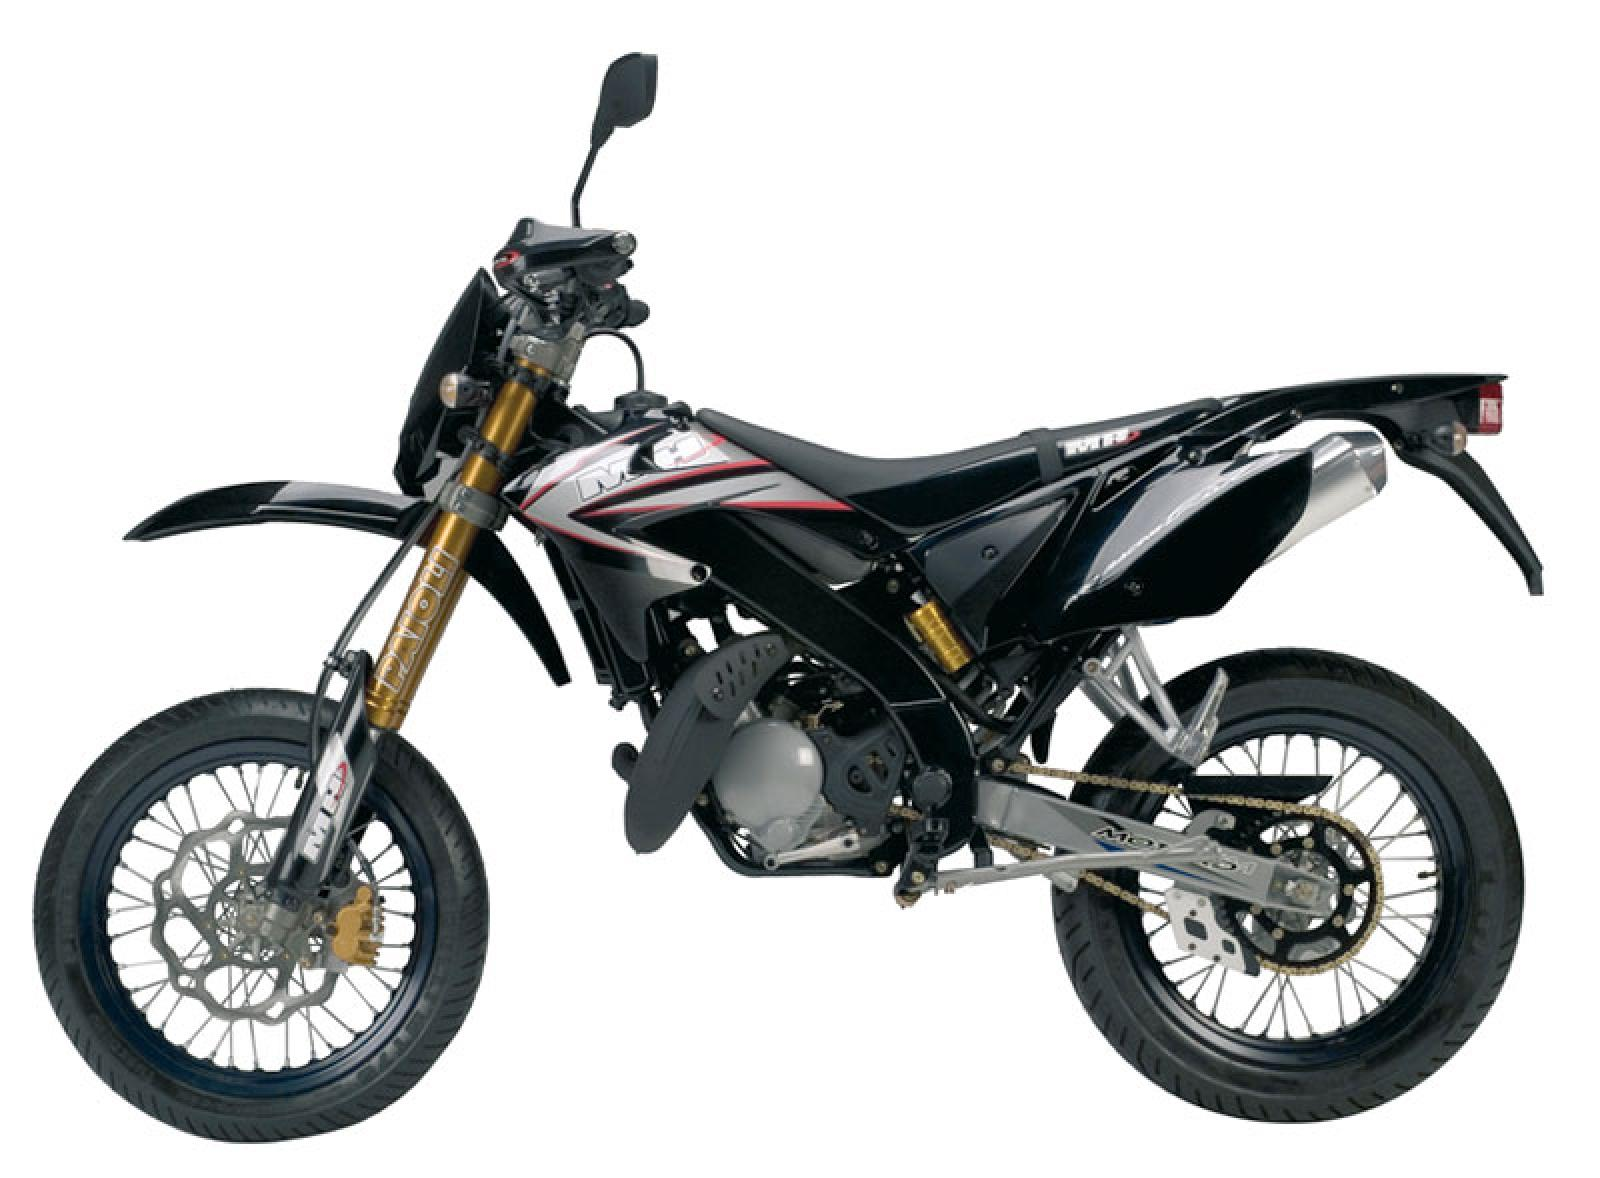 Motorhispania Furia Max Super Motard 2006 images #112201